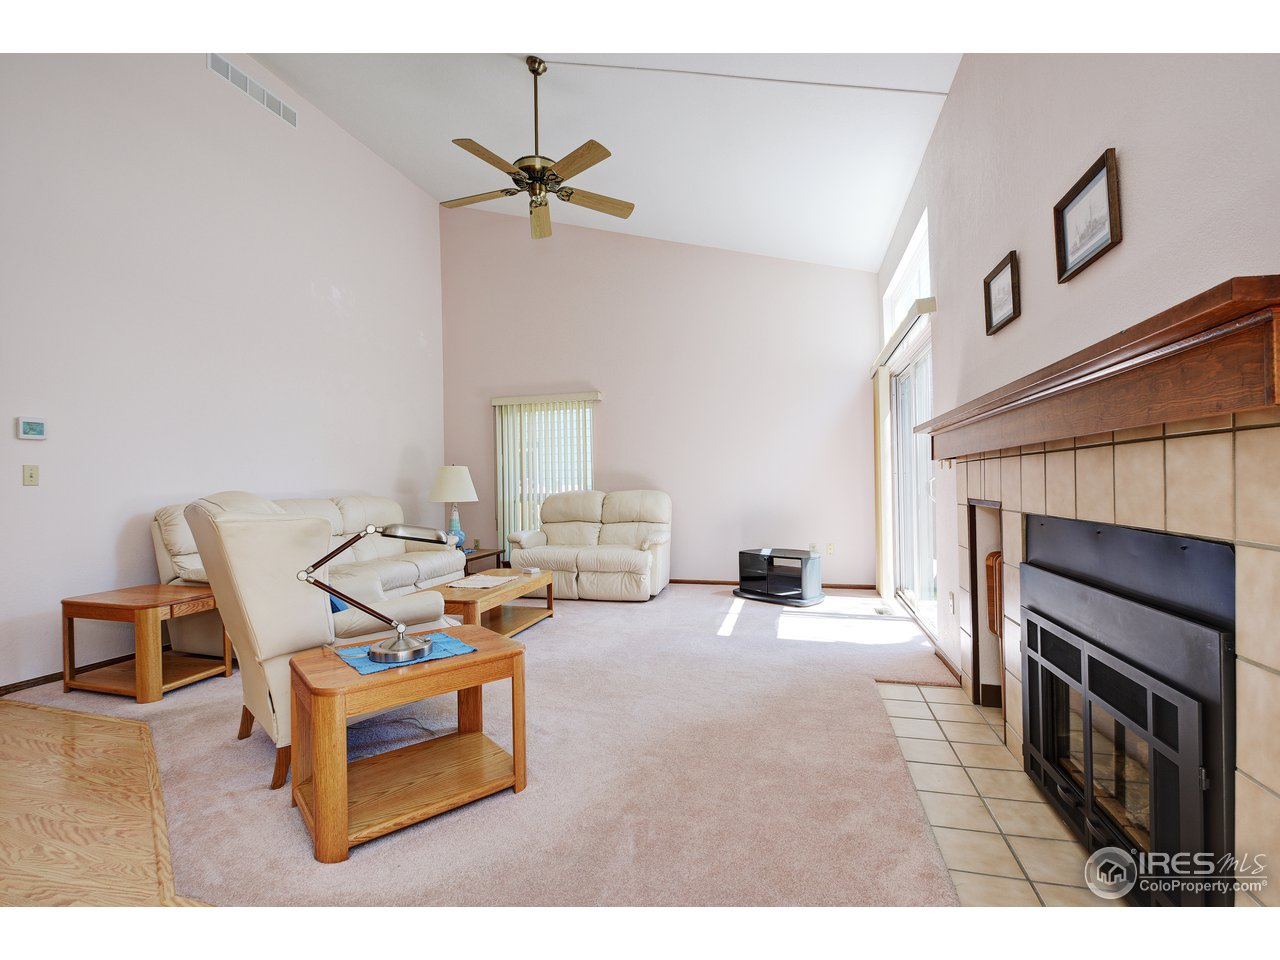 Living room with vaulted ceilings & gas fireplace